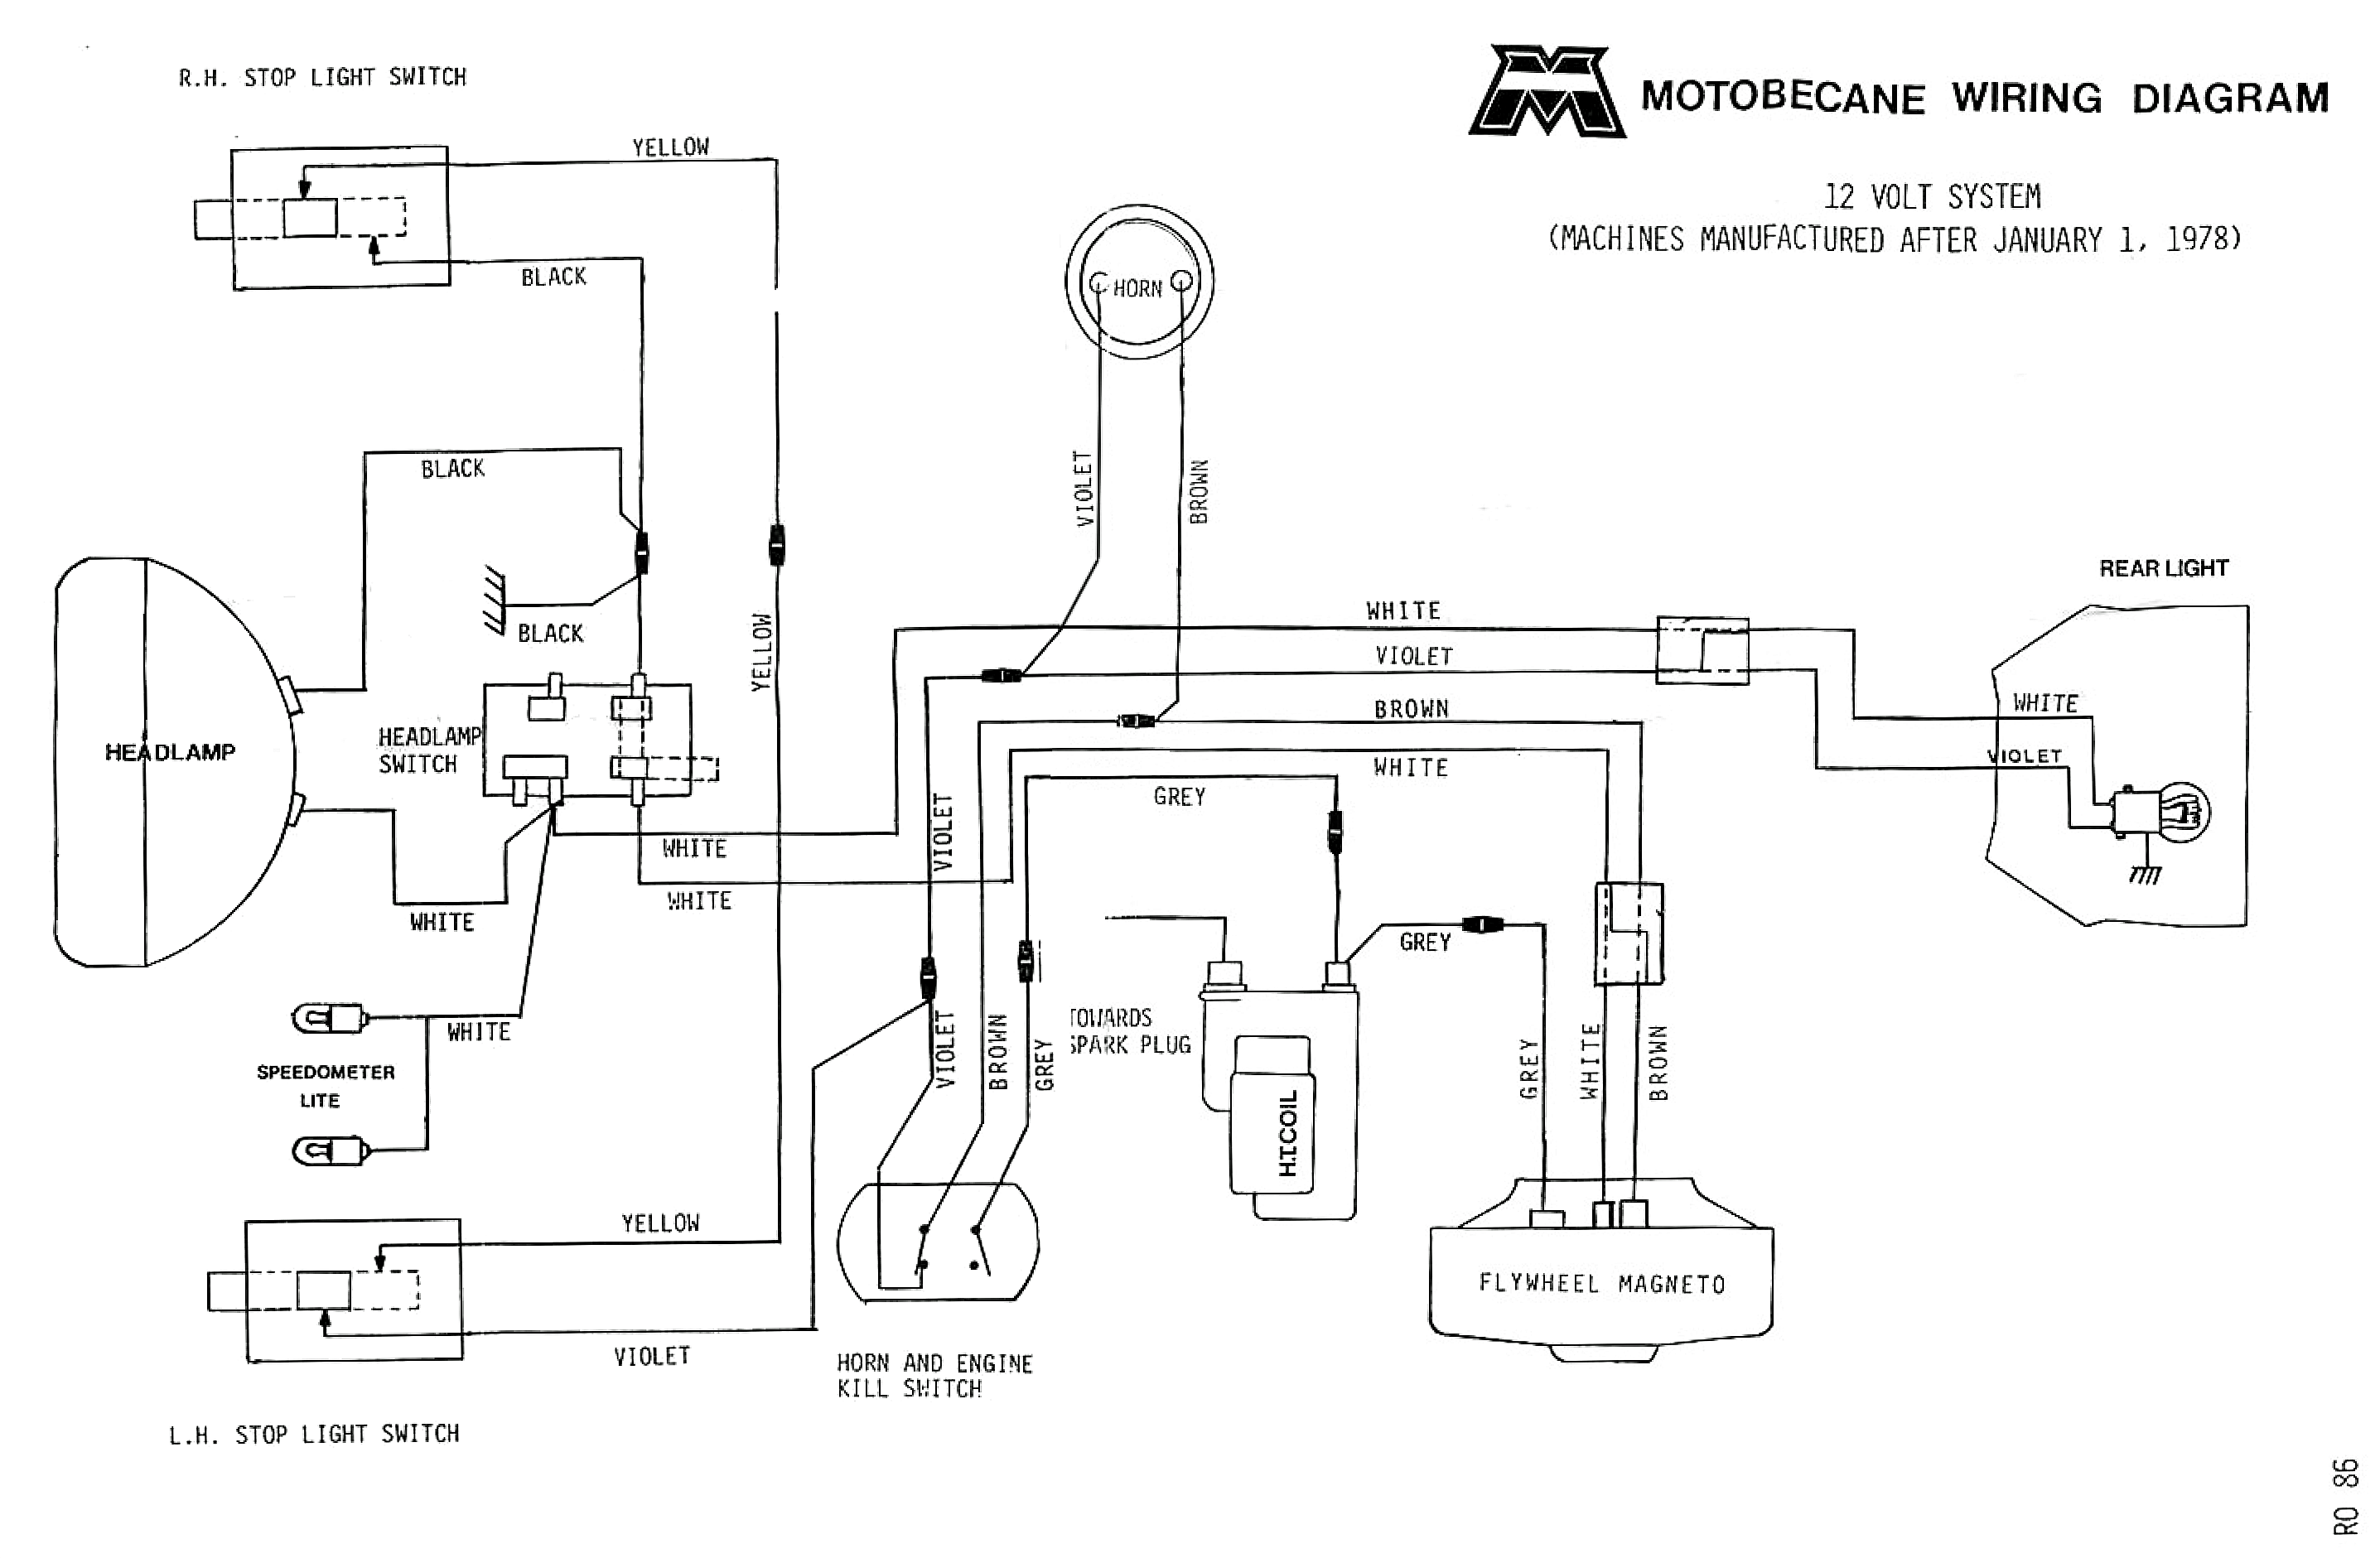 Motobecane Wiring Diagrams Moped Wiki 4 Wire Regulator Diagram For Scooter Motobecane12v